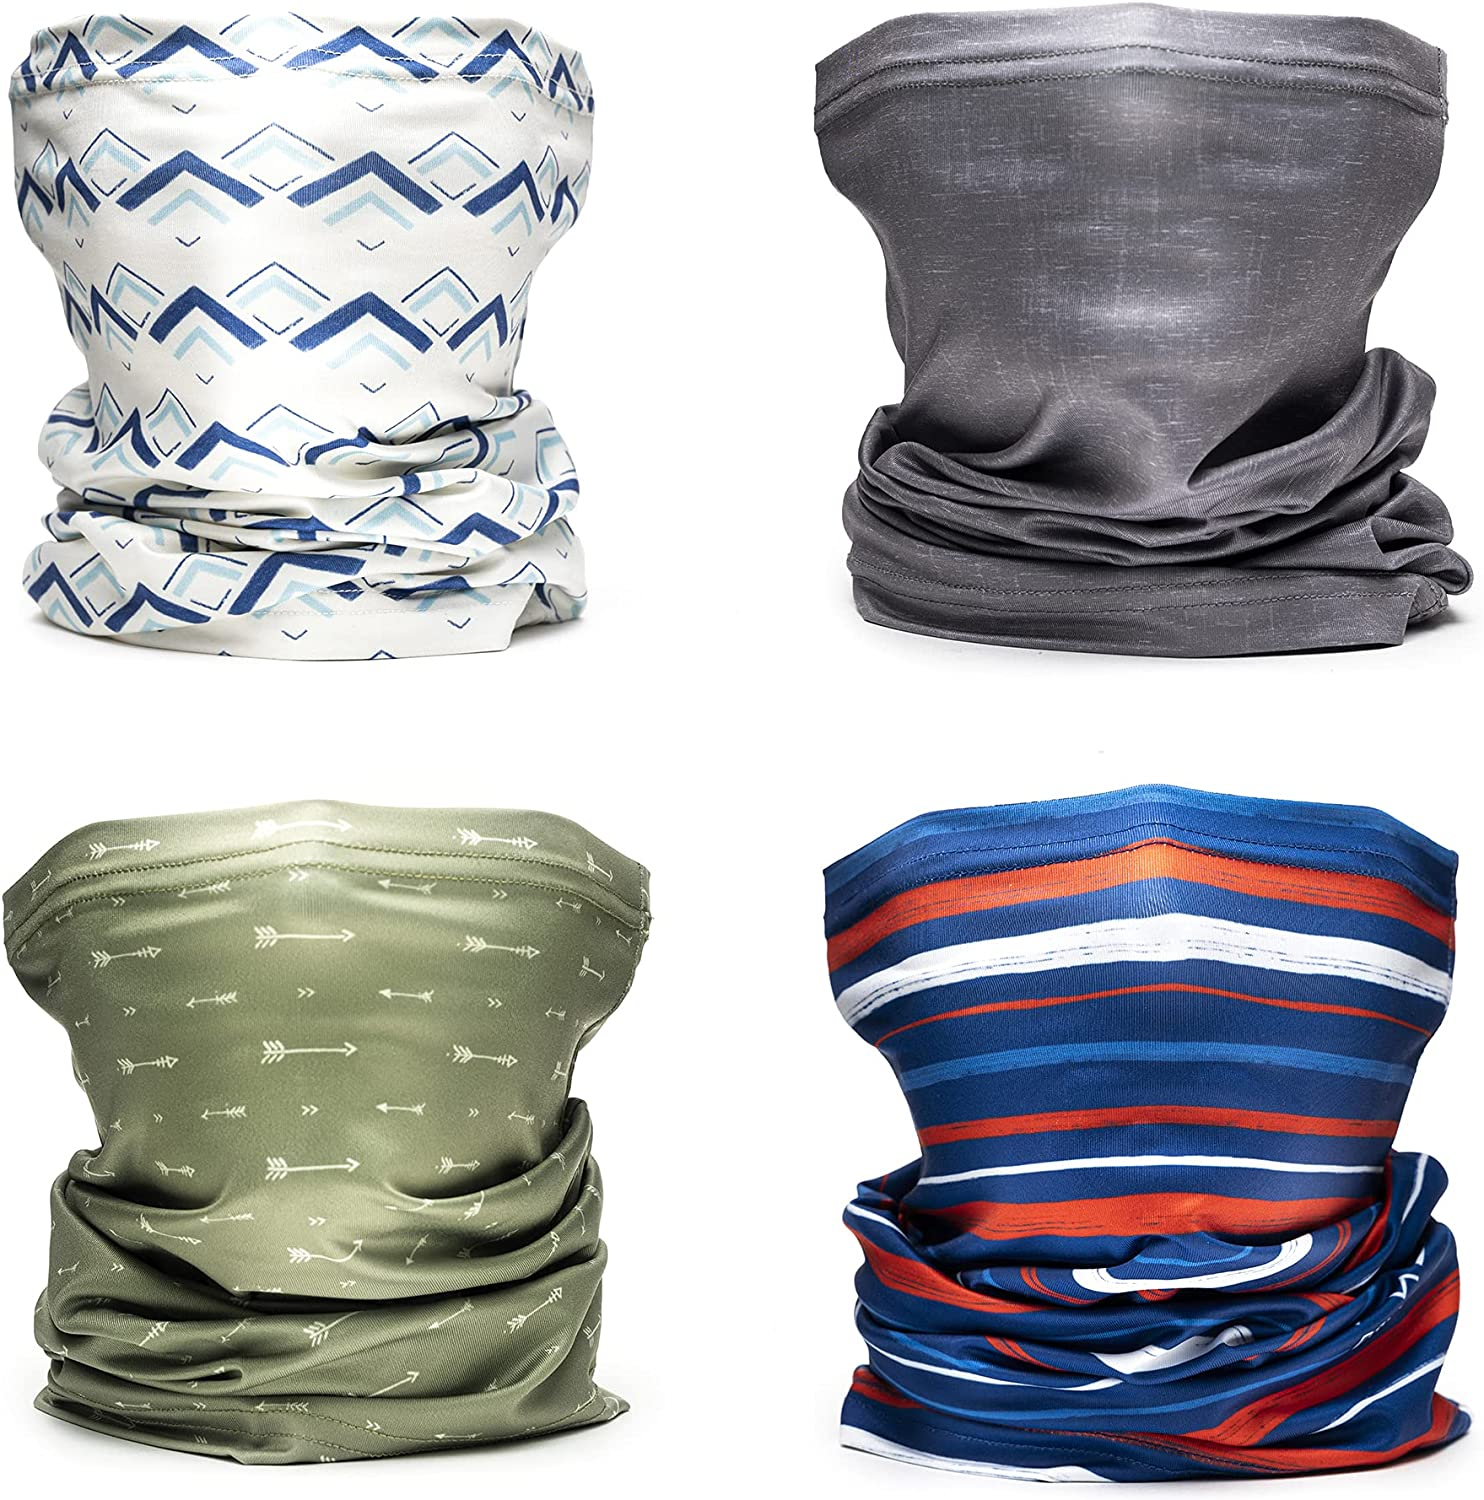 Drift Neck Gaiters - 4 Pack   High-Performance Fabric   95% Recycled   Two Sizes